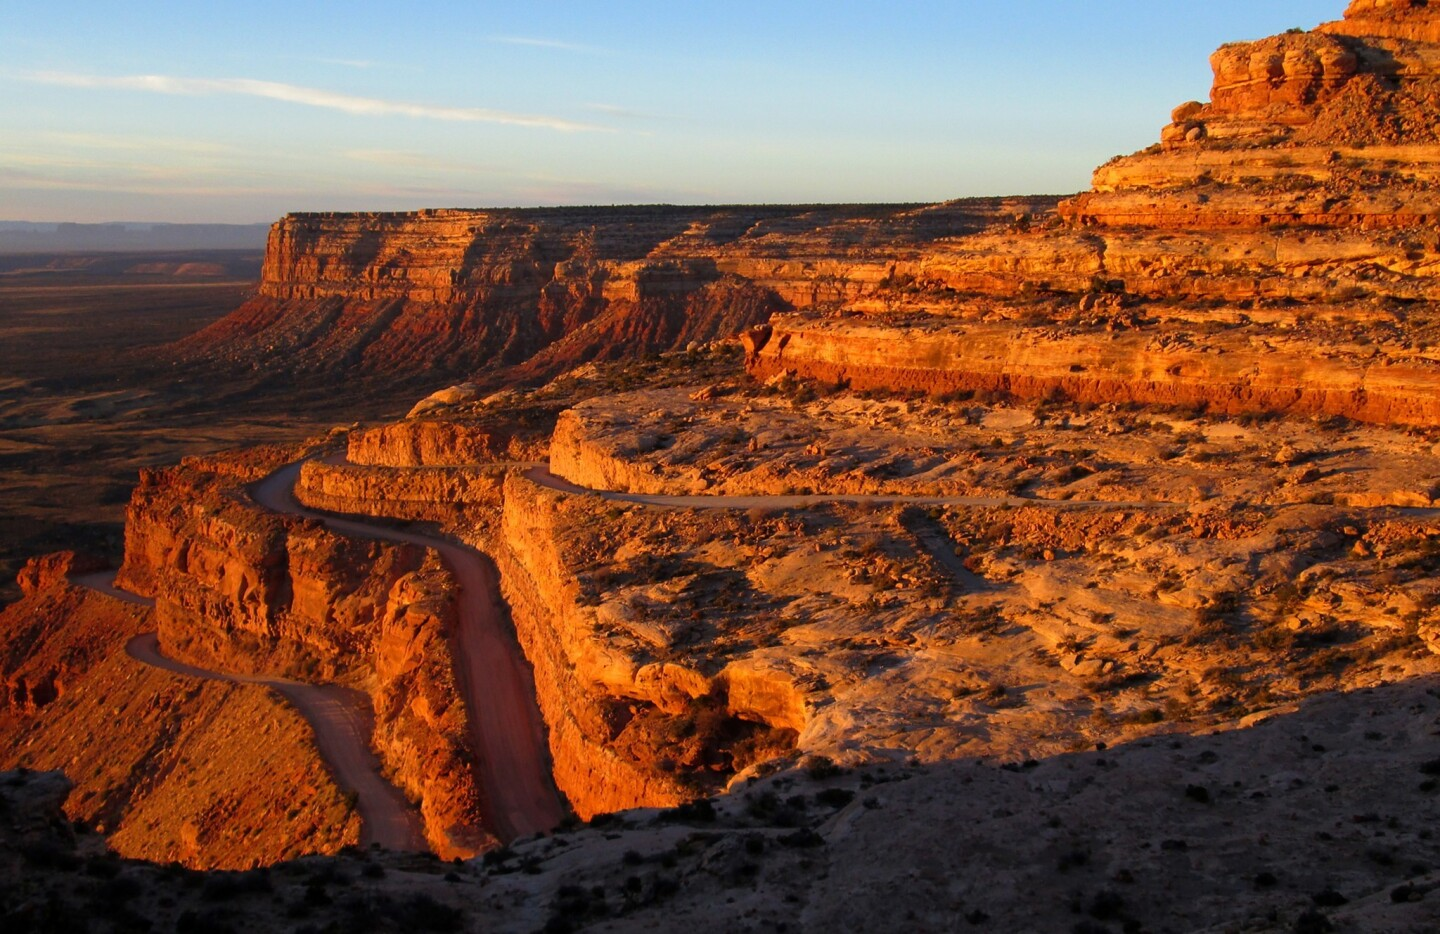 A modern road ascends its way to Cedar Mesa, home to one of the largest collections of pre-Columbian ruins in the United States, in southeastern Utah.